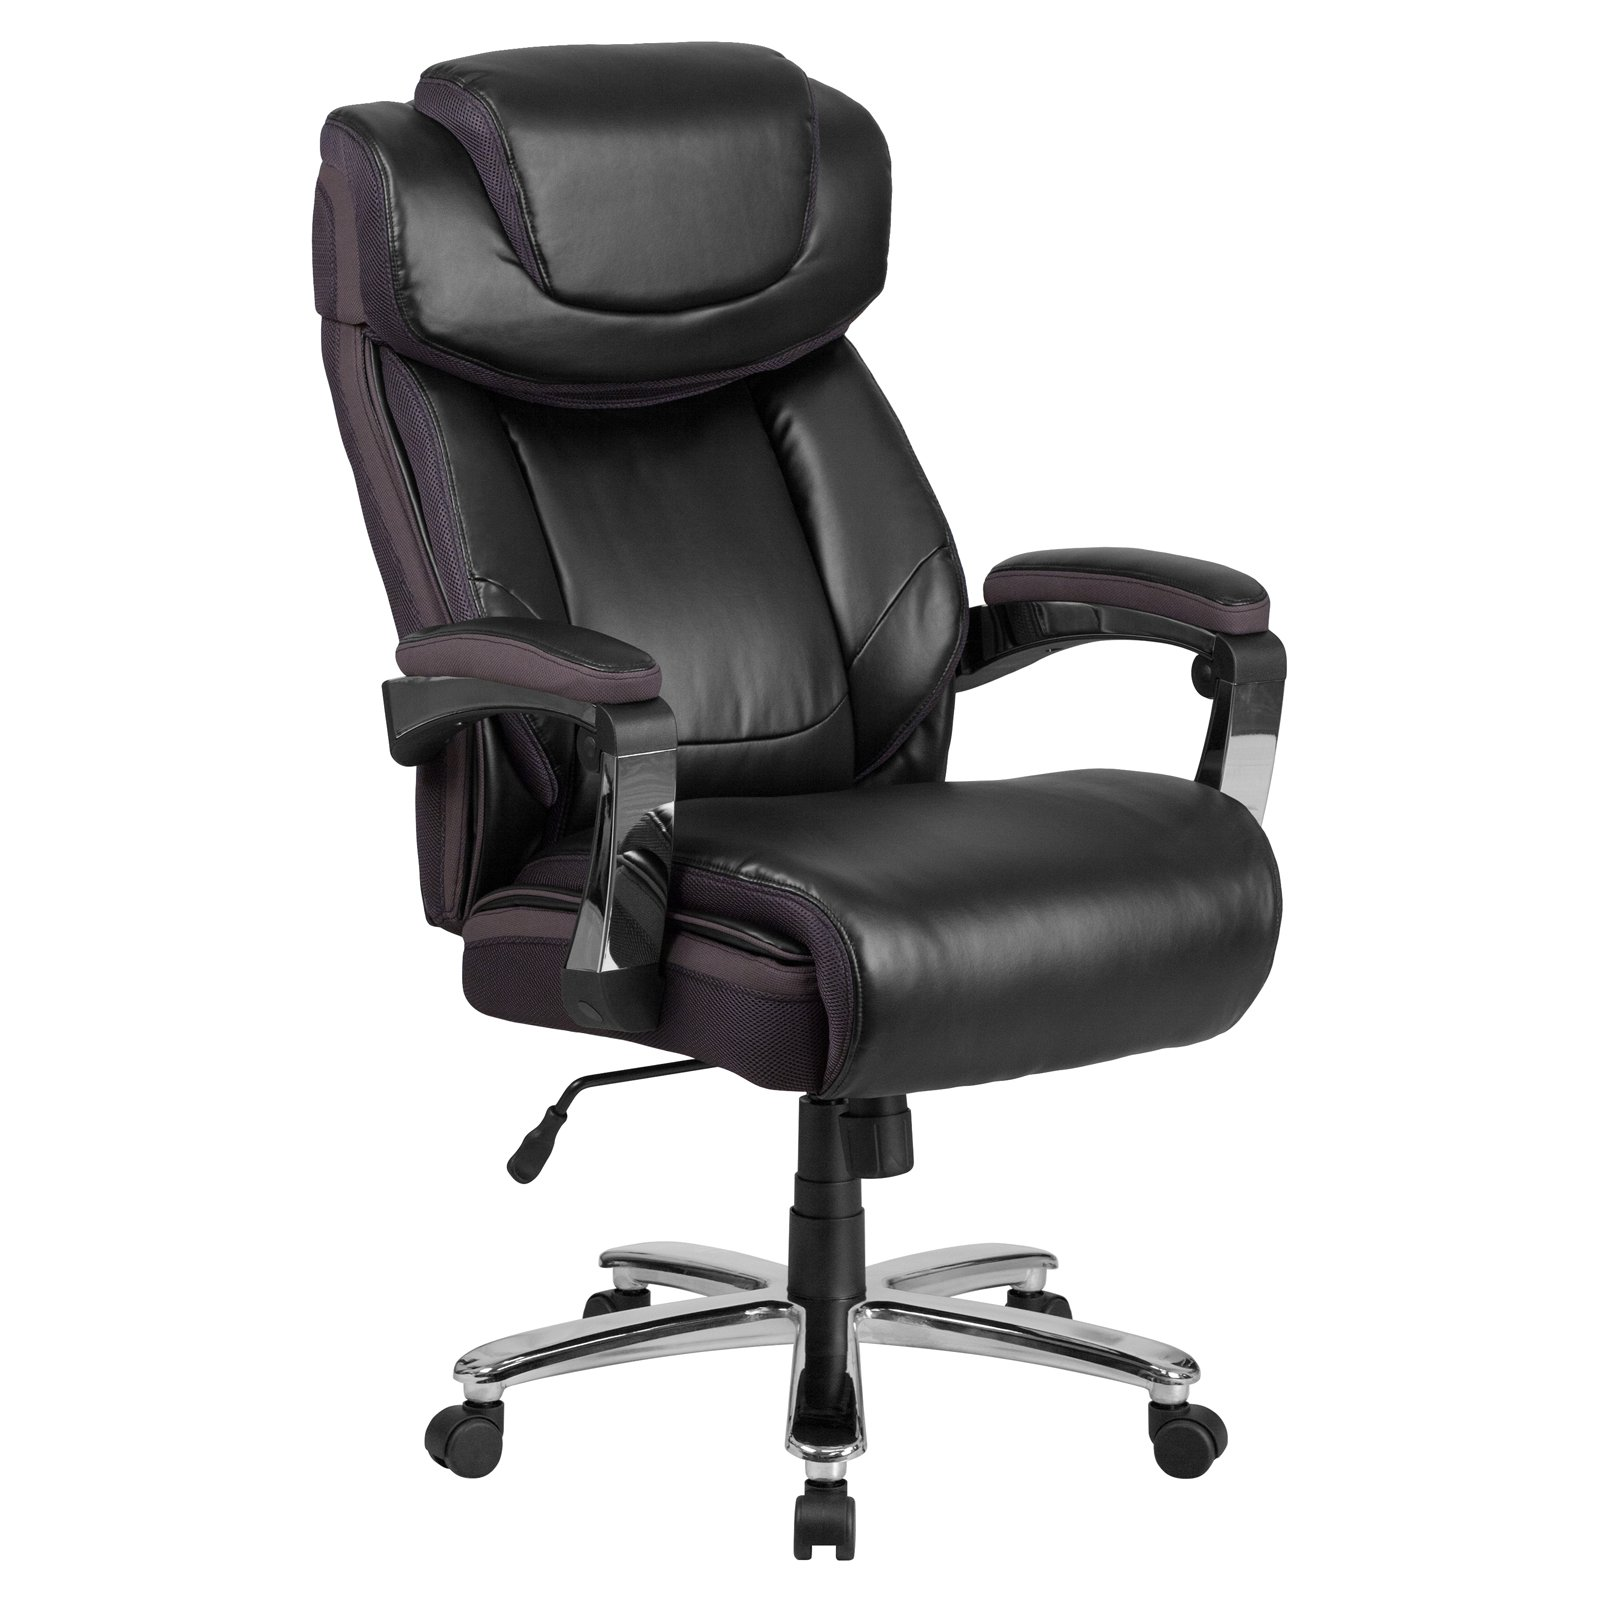 big and tall hunting chairs chair covers for pet hair office flash furniture hercules series 500 lb capacity black leather executive swivel